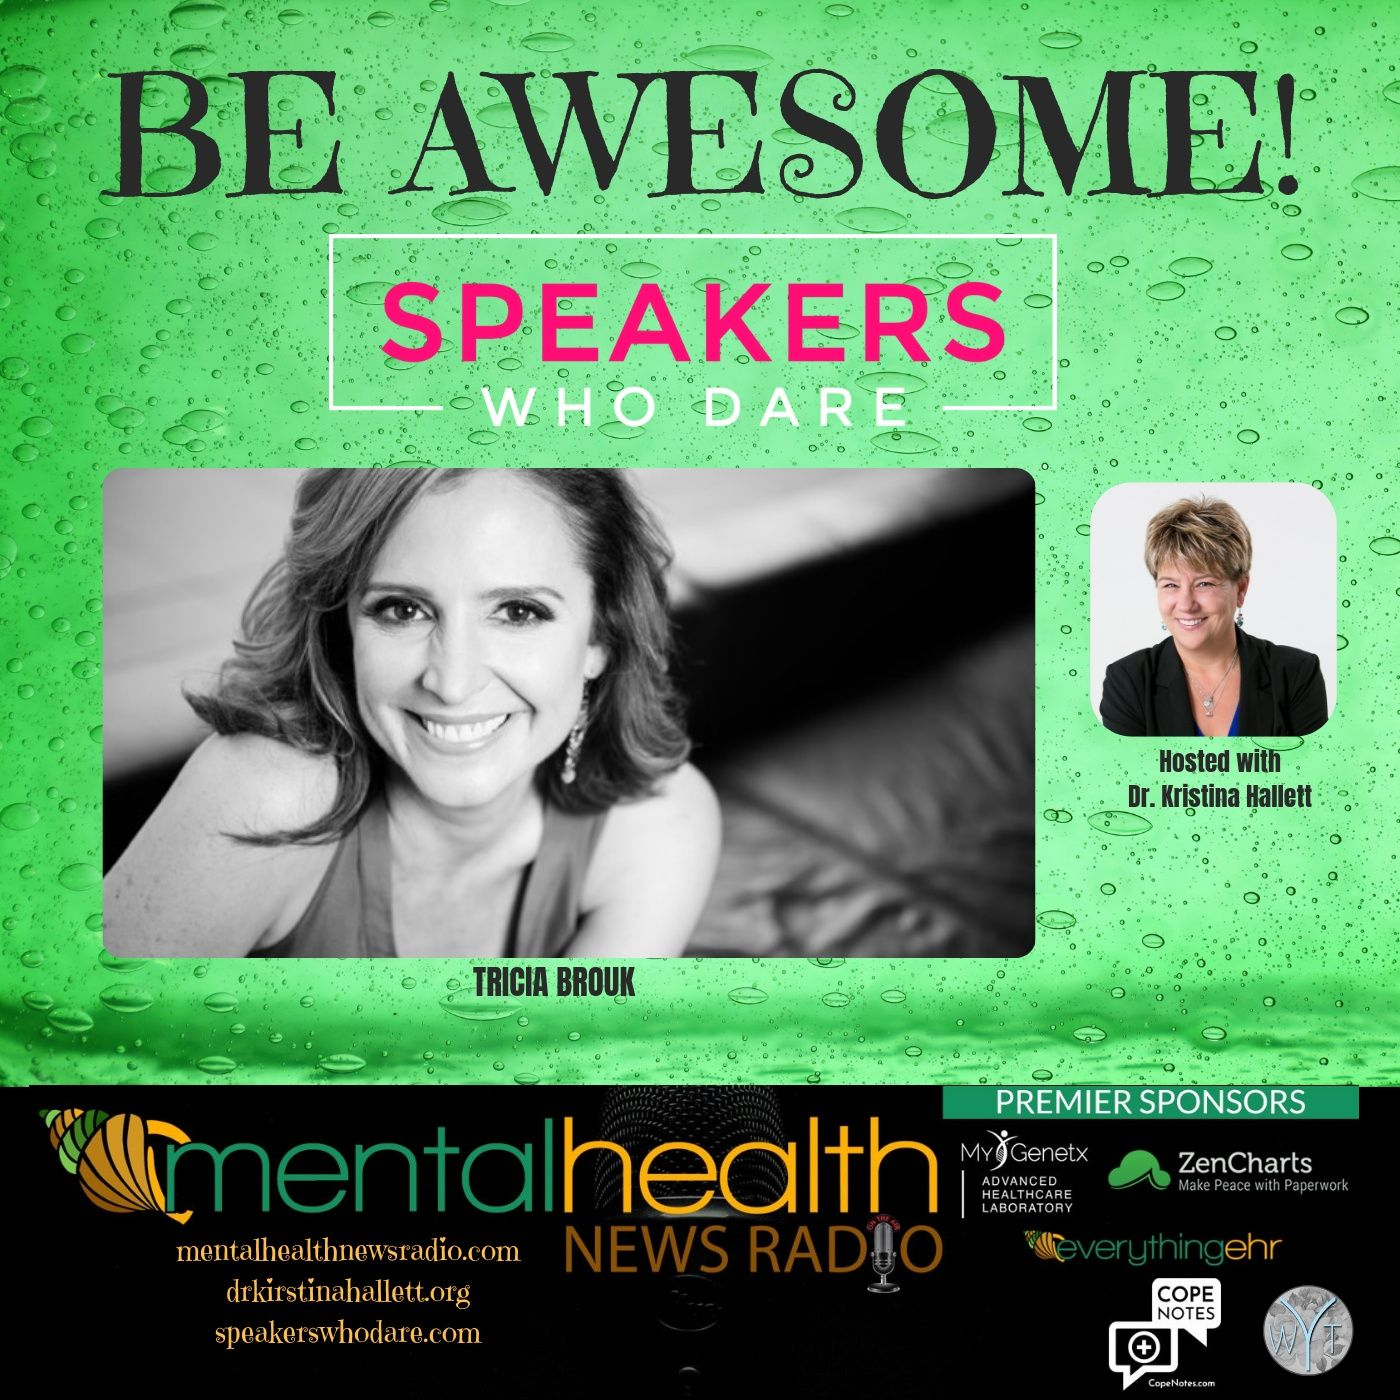 Mental Health News Radio - Be Awesome: Speakers Who Dare with Tricia Brouk